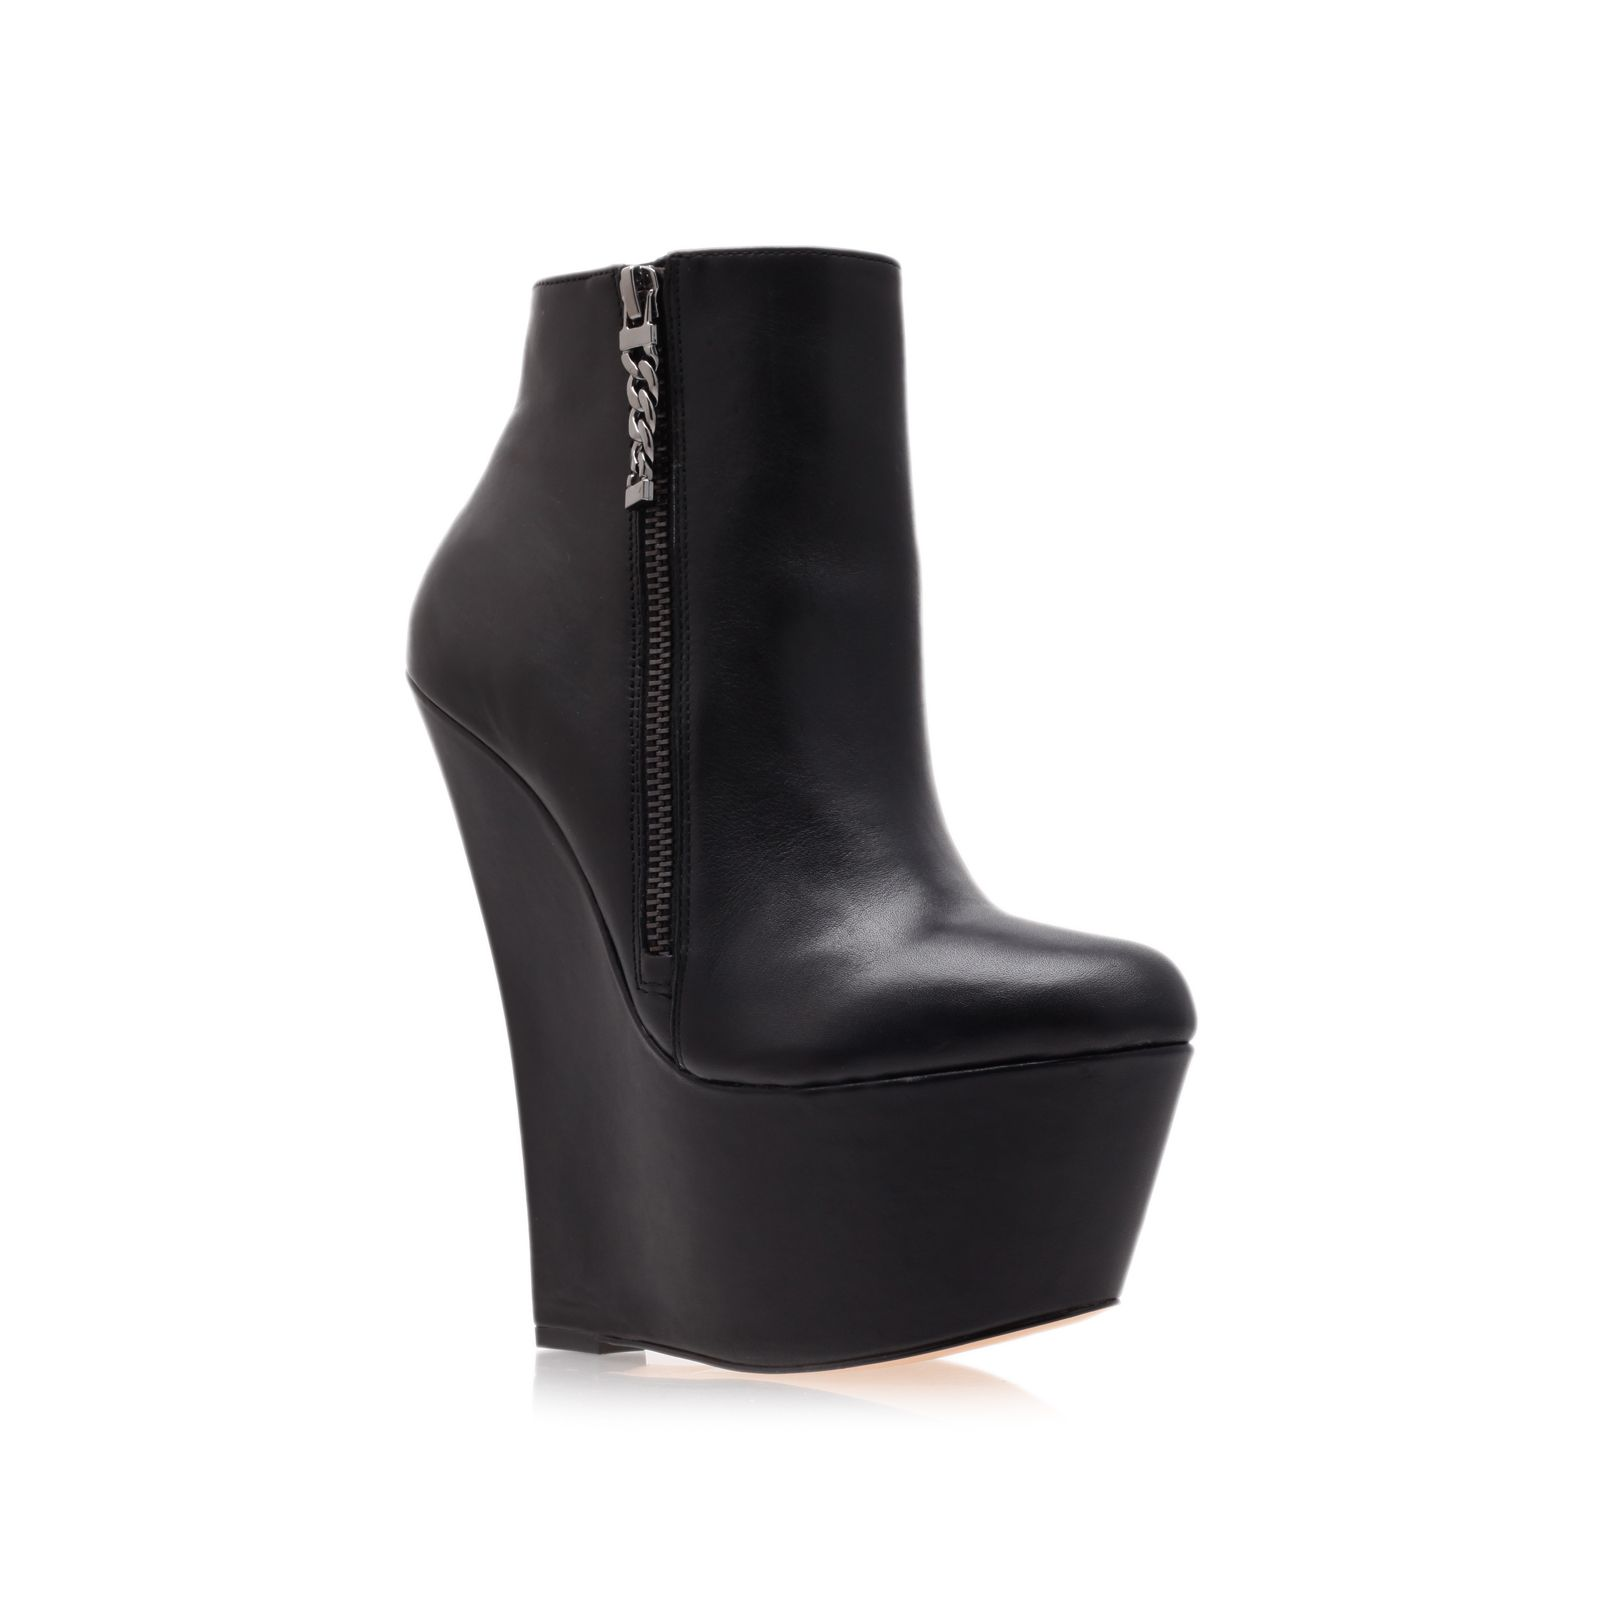 Carvela Kurt Geiger Smirk Ankle Boots In Black | Lyst